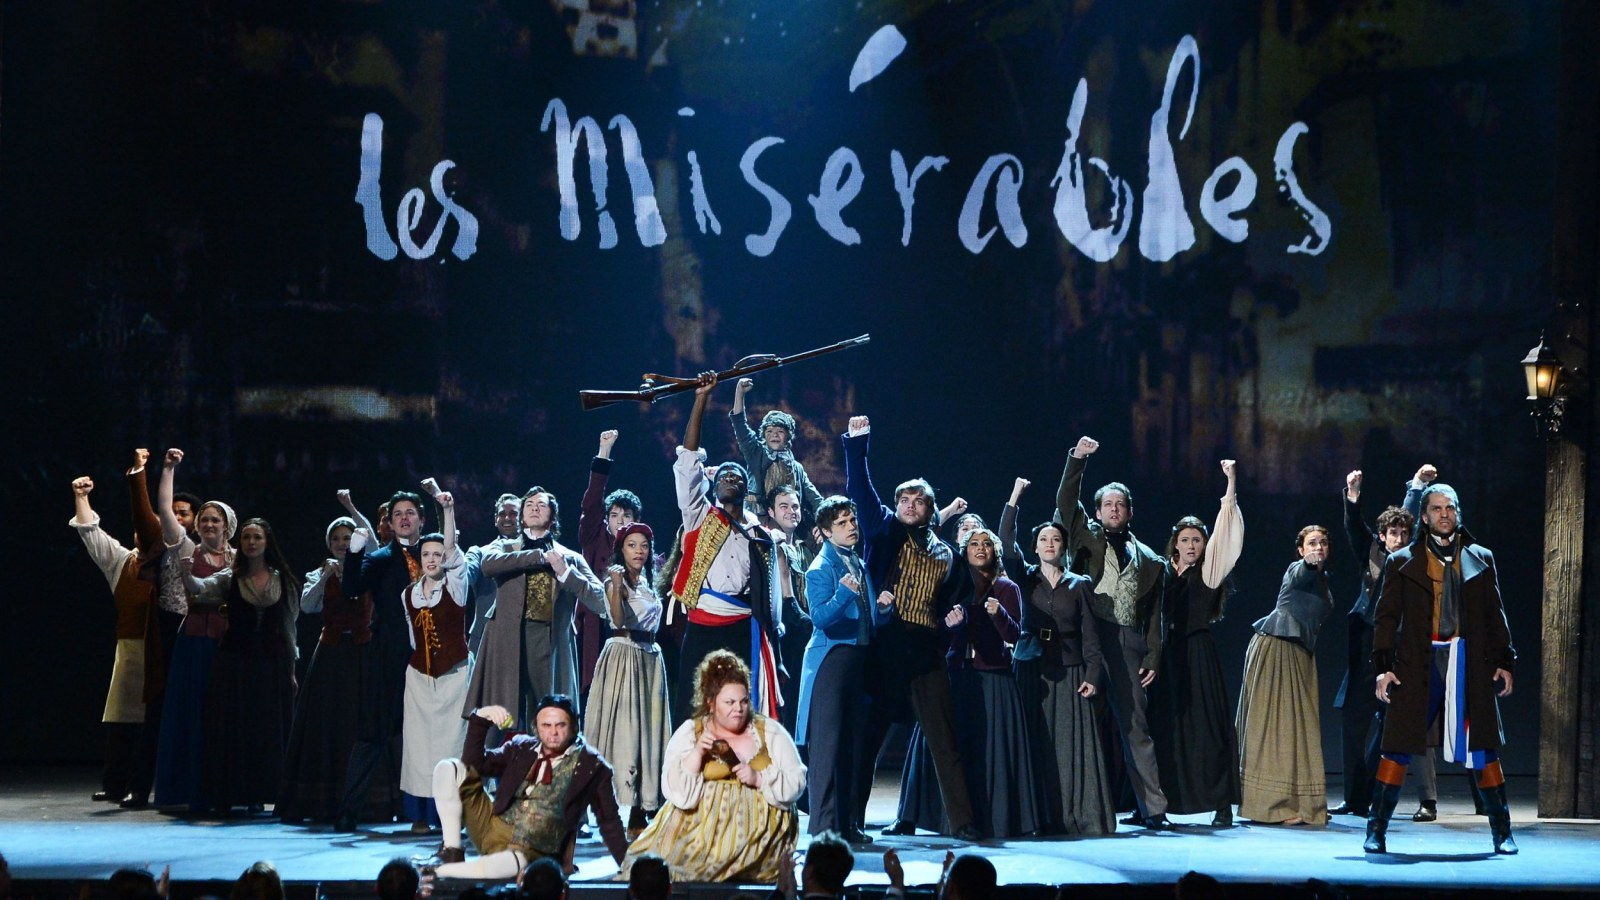 Victor Hugo S Google Doodle Shows The Les Miserables Author Is Still Relevant In Politics And Pop Culture